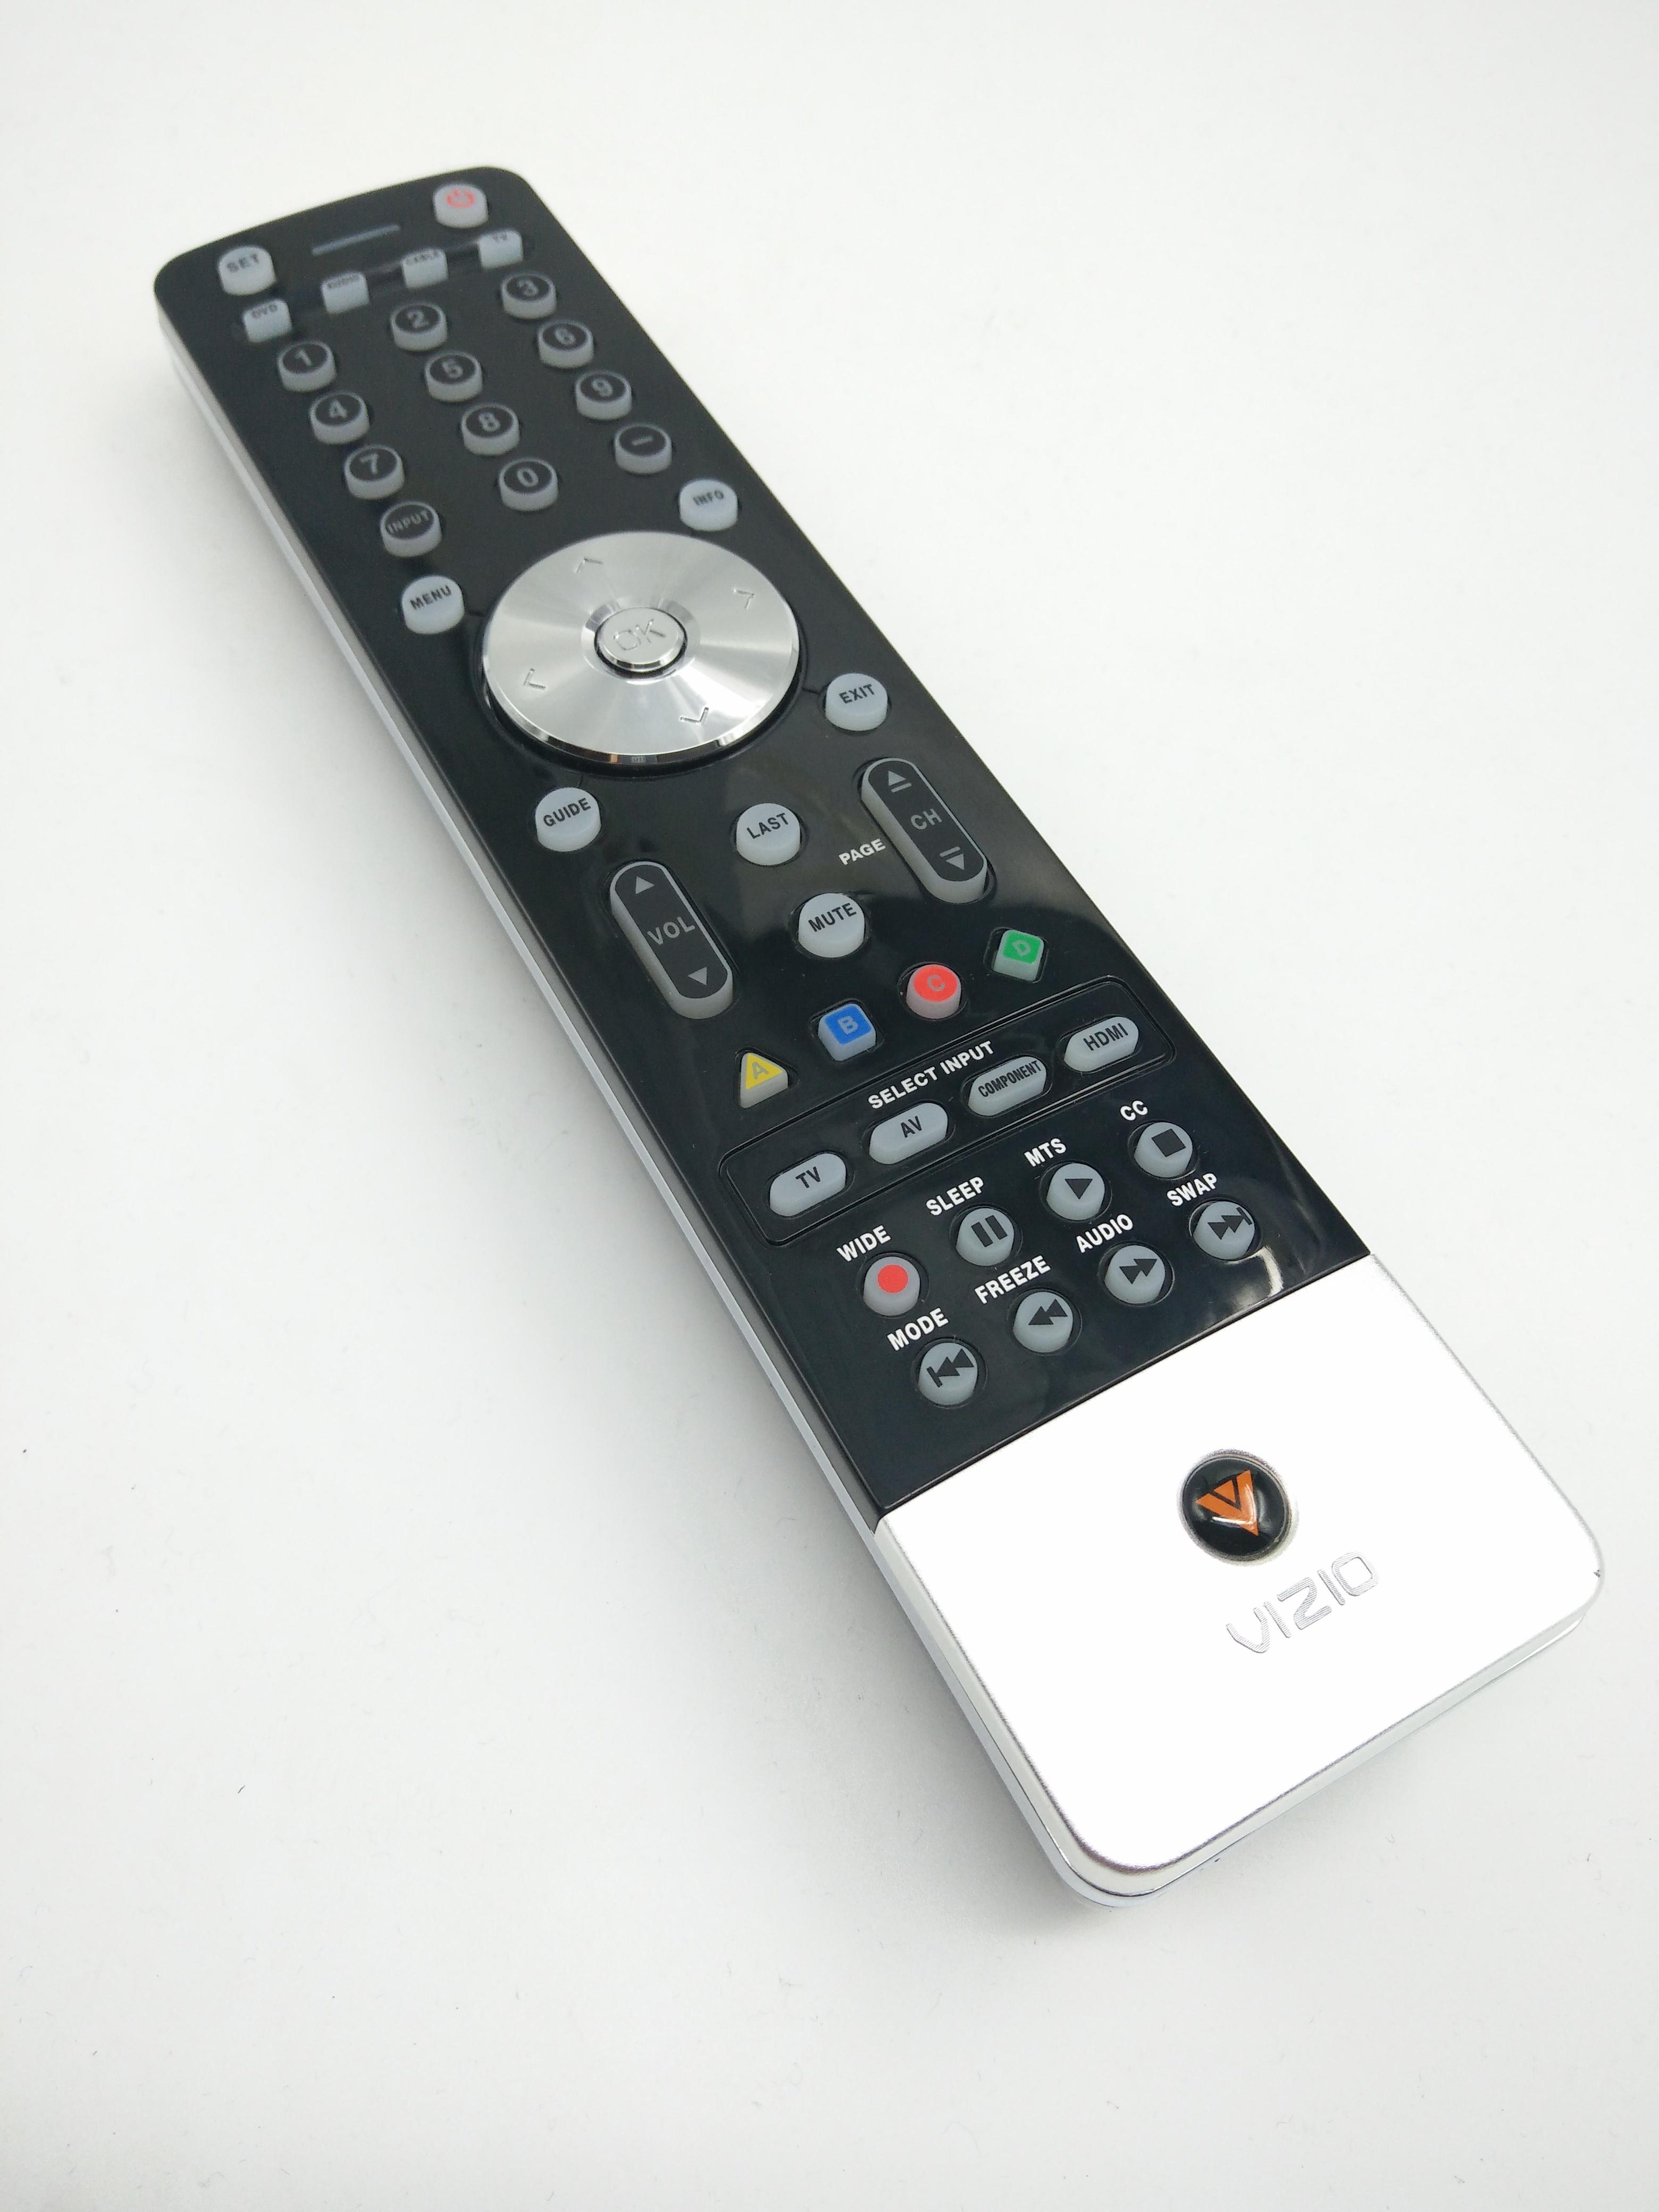 vizio tv remote control replacement. new oem replacement vizio tv remote control vur8 for sv471xvt sv421xvt lspelak vvd0349 vw26lhdtv20f vw22lhdtv10 gv52lf gv52lfhdtv g home i